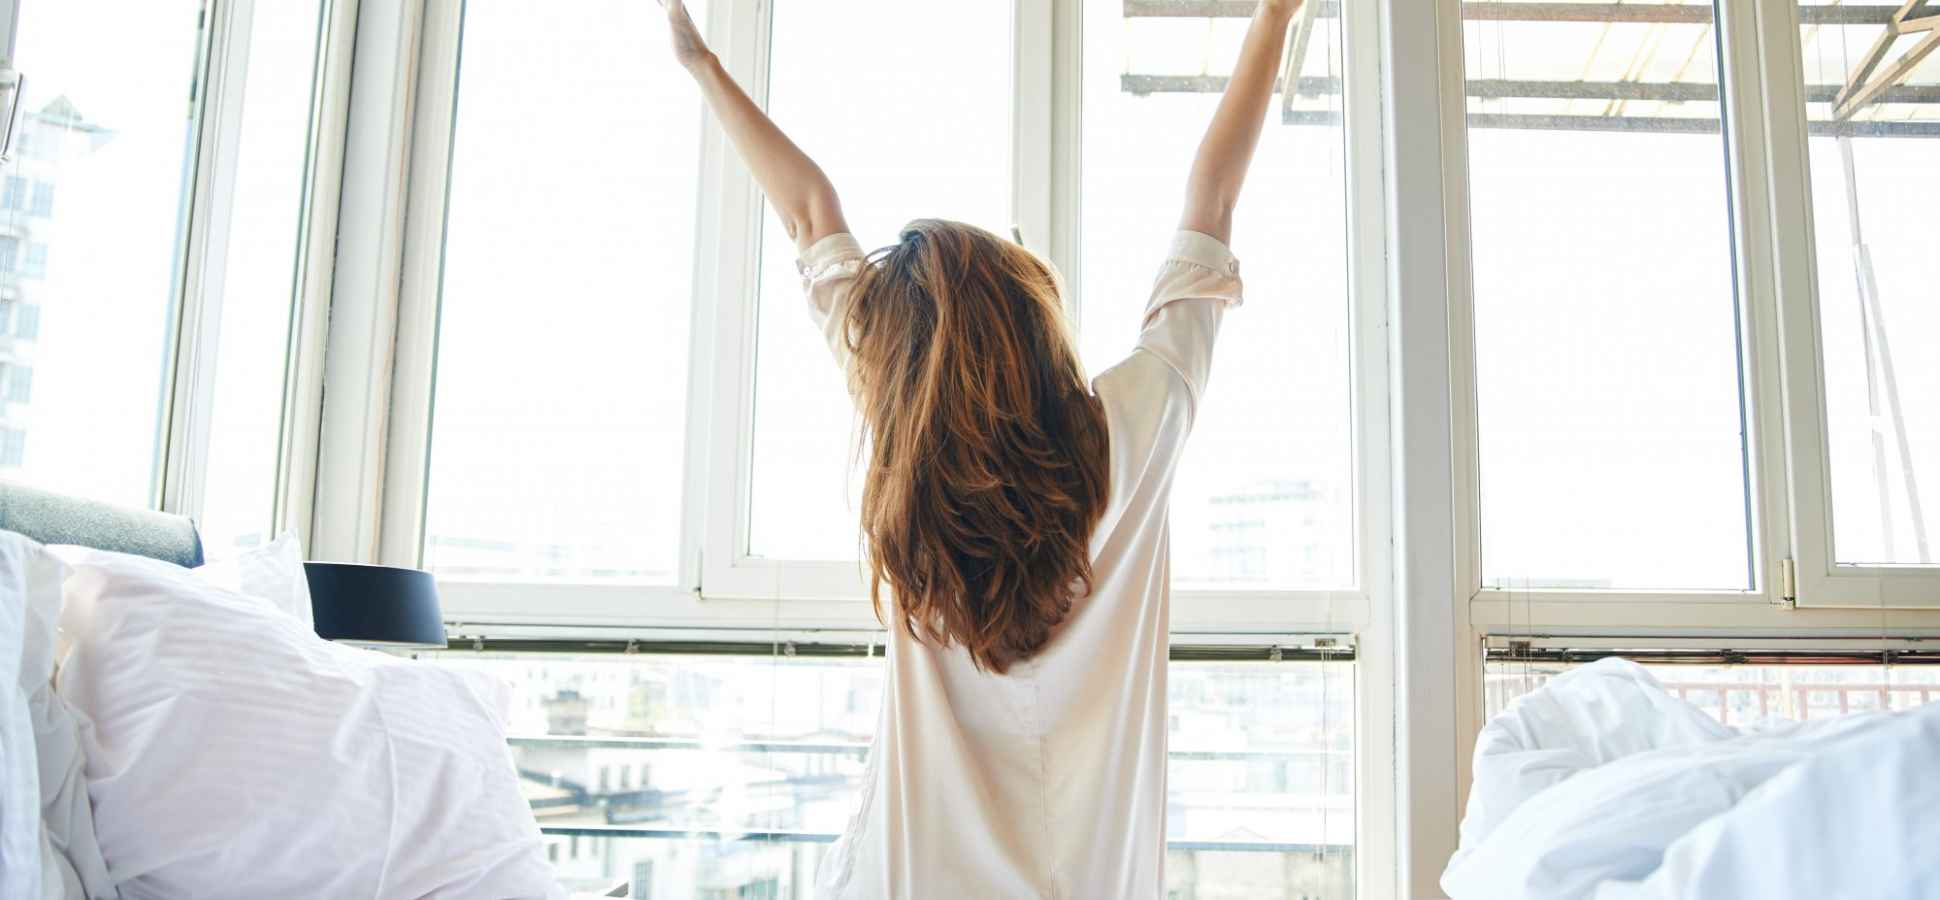 The Life-Changing Habit of Starting Your Day on Purpose